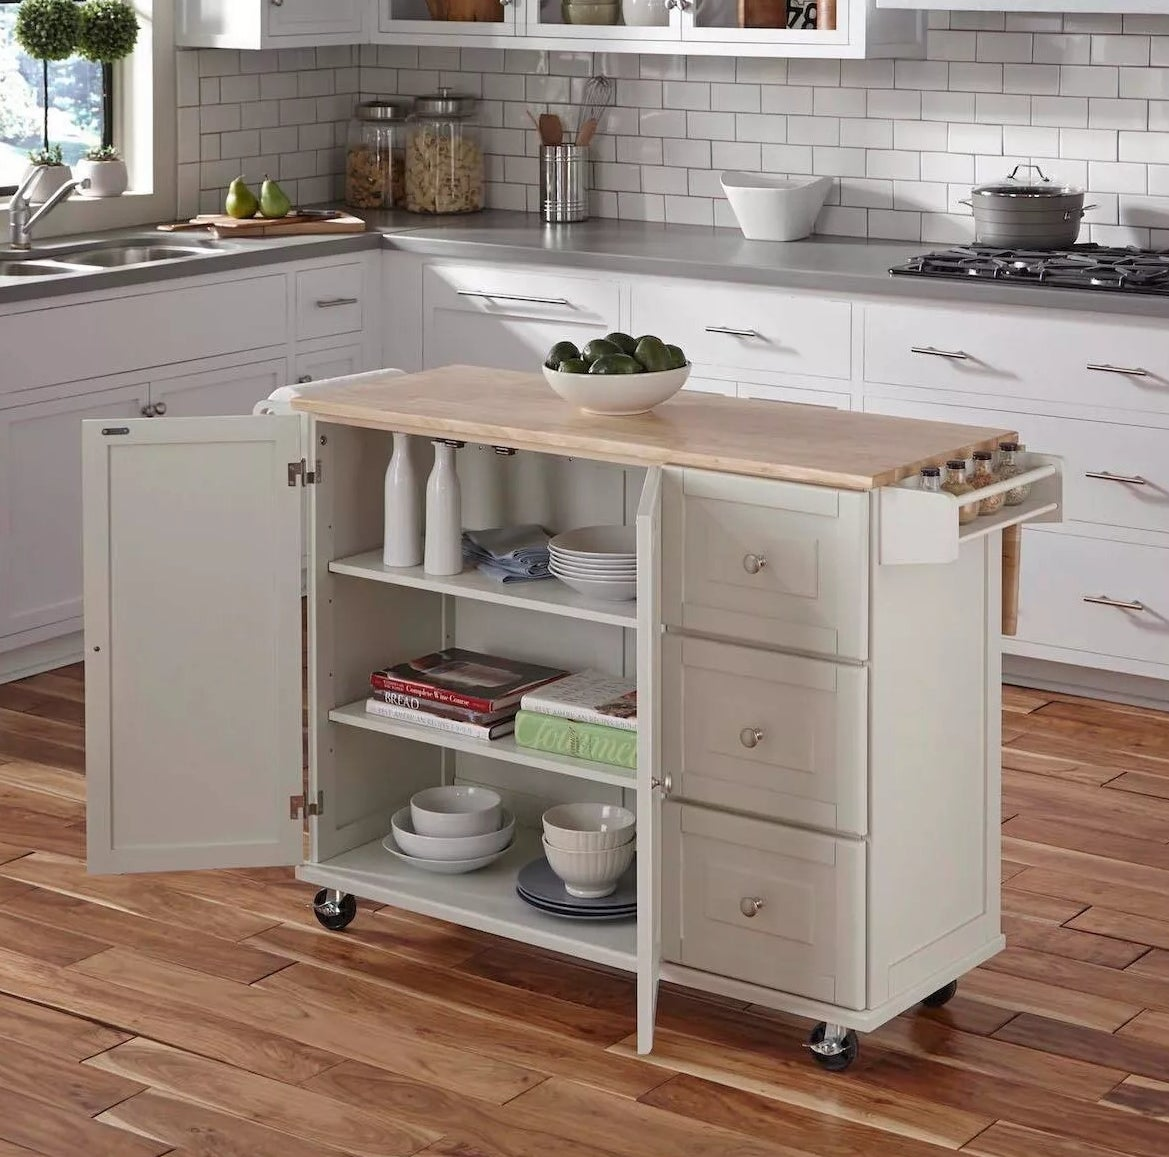 The kitchen cart on casters, three drawers, a built-in spice rack, an attached paper towel holder, and a cabinet with three shelves